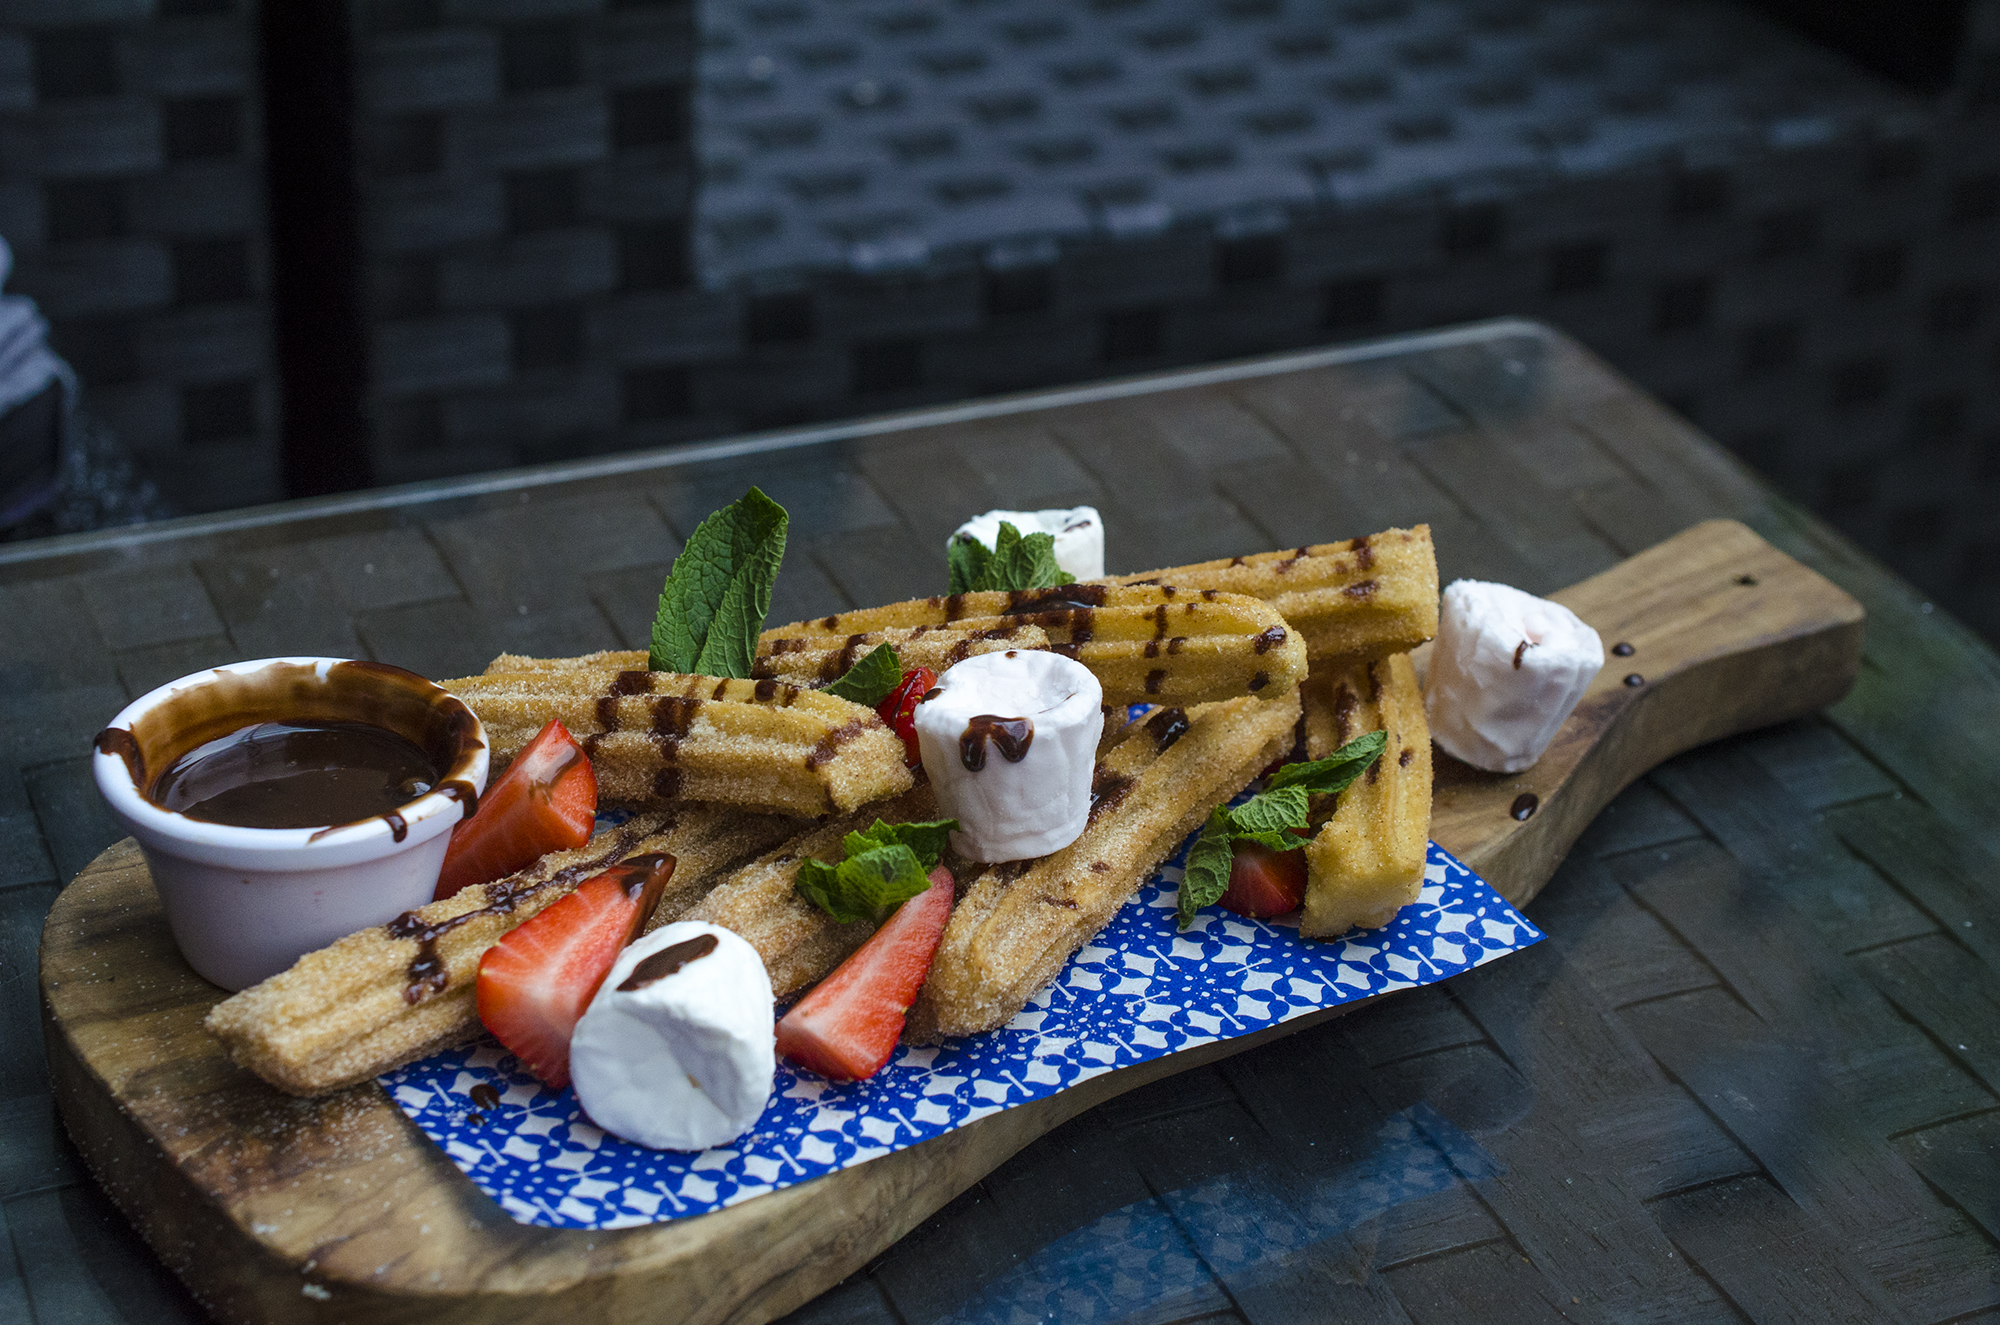 La Tasca Desserts Churros Review